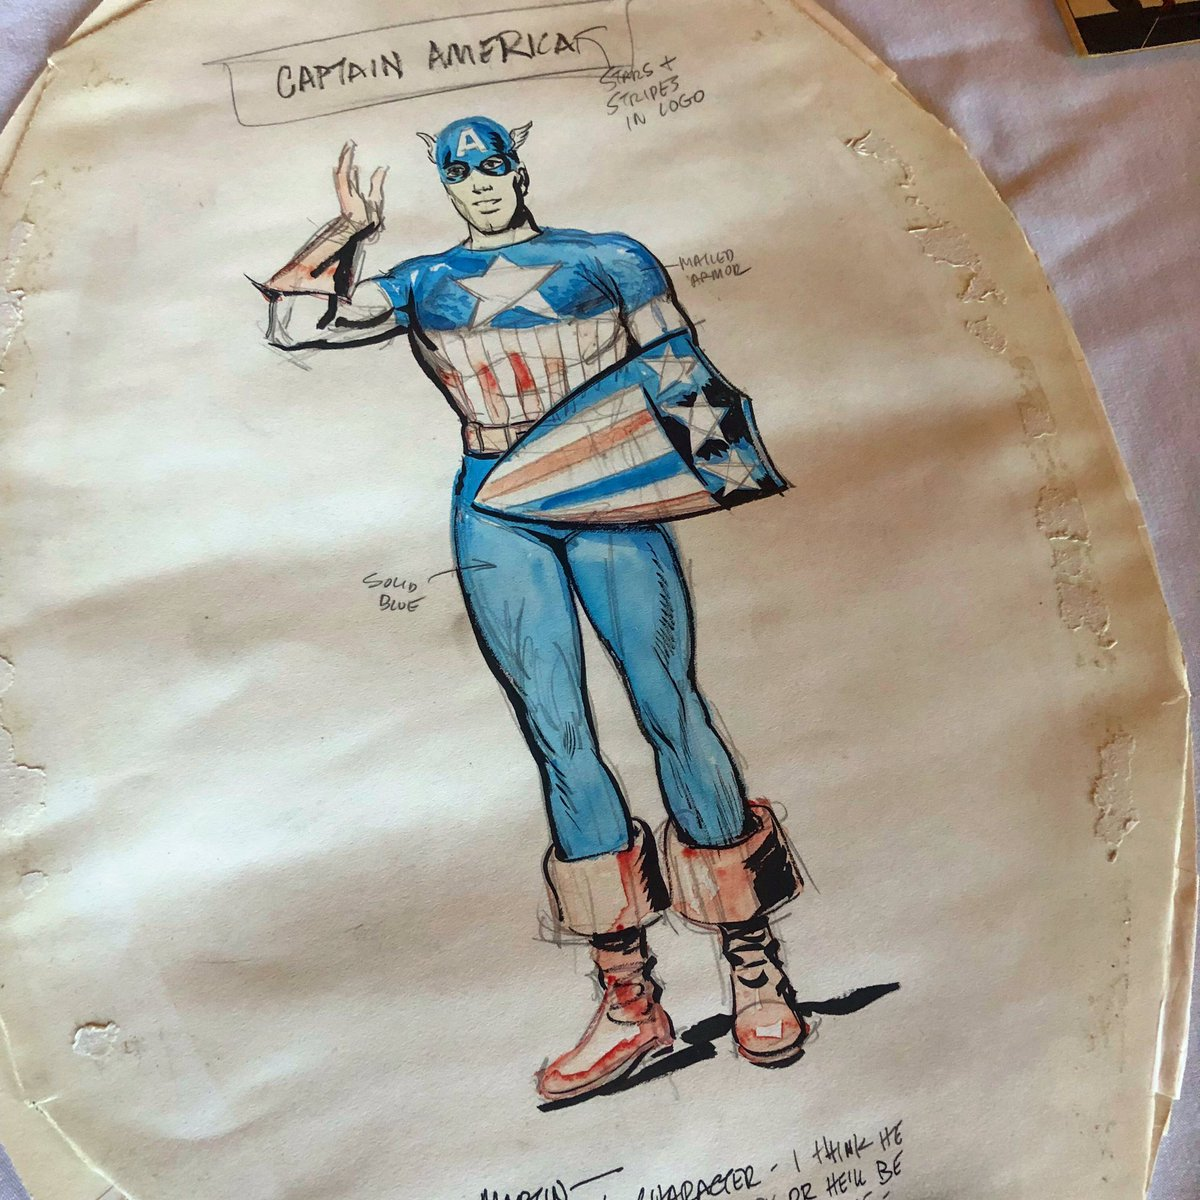 One of our favorite super heroes will be celebrating his 80th birthday this year. Captain America debuted in March 1941. From the @librarycongress collection: the original drawing by Joe Simon.    @ChrisEvans @Marvel @MarvelStudios #CaptainAmerica